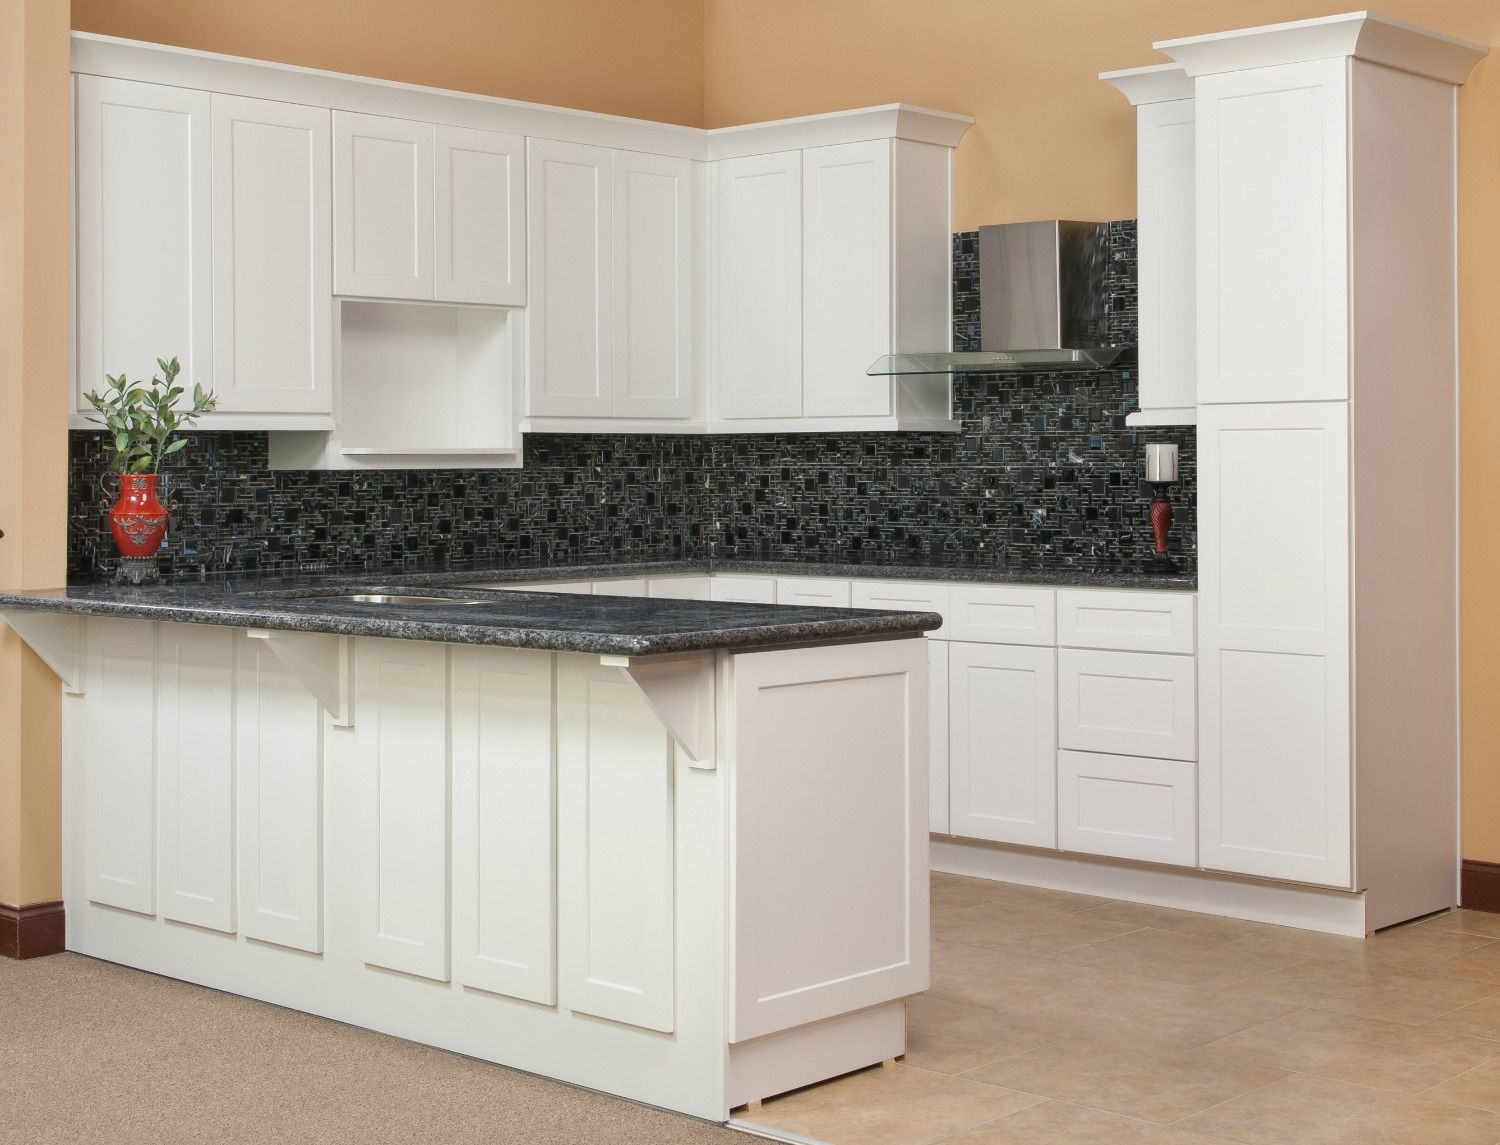 cabinets geneva aaa distributor cabinetry to ready assemble kitchen collection